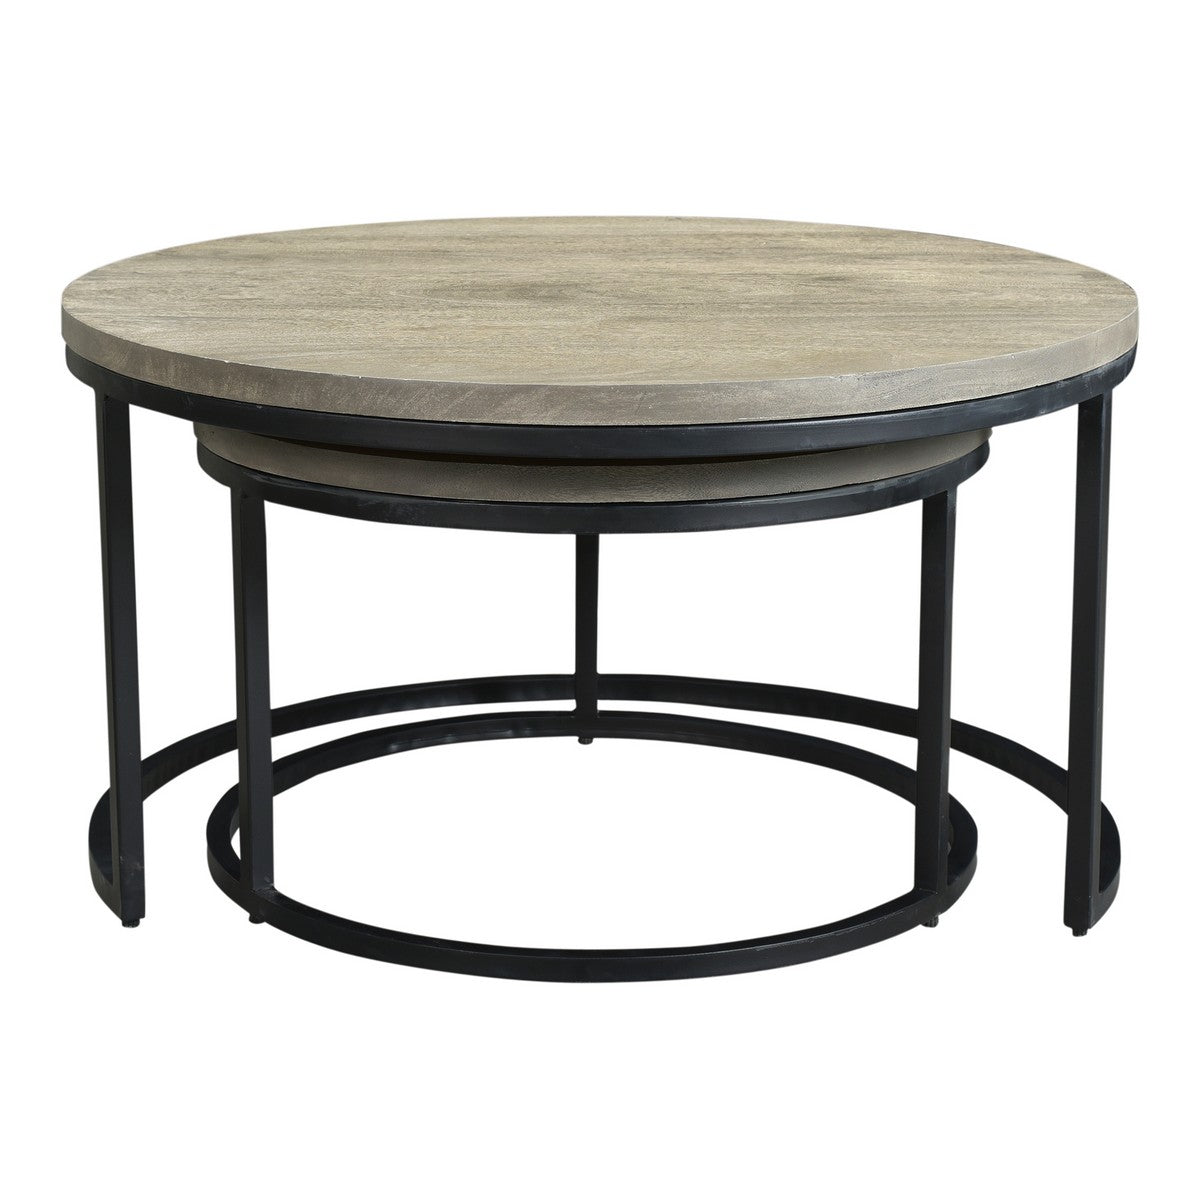 Moe's Home Collection Drey Round Nesting Coffee Tables Set of Two - BV-1011-15 - Moe's Home Collection - Coffee Tables - Minimal And Modern - 1